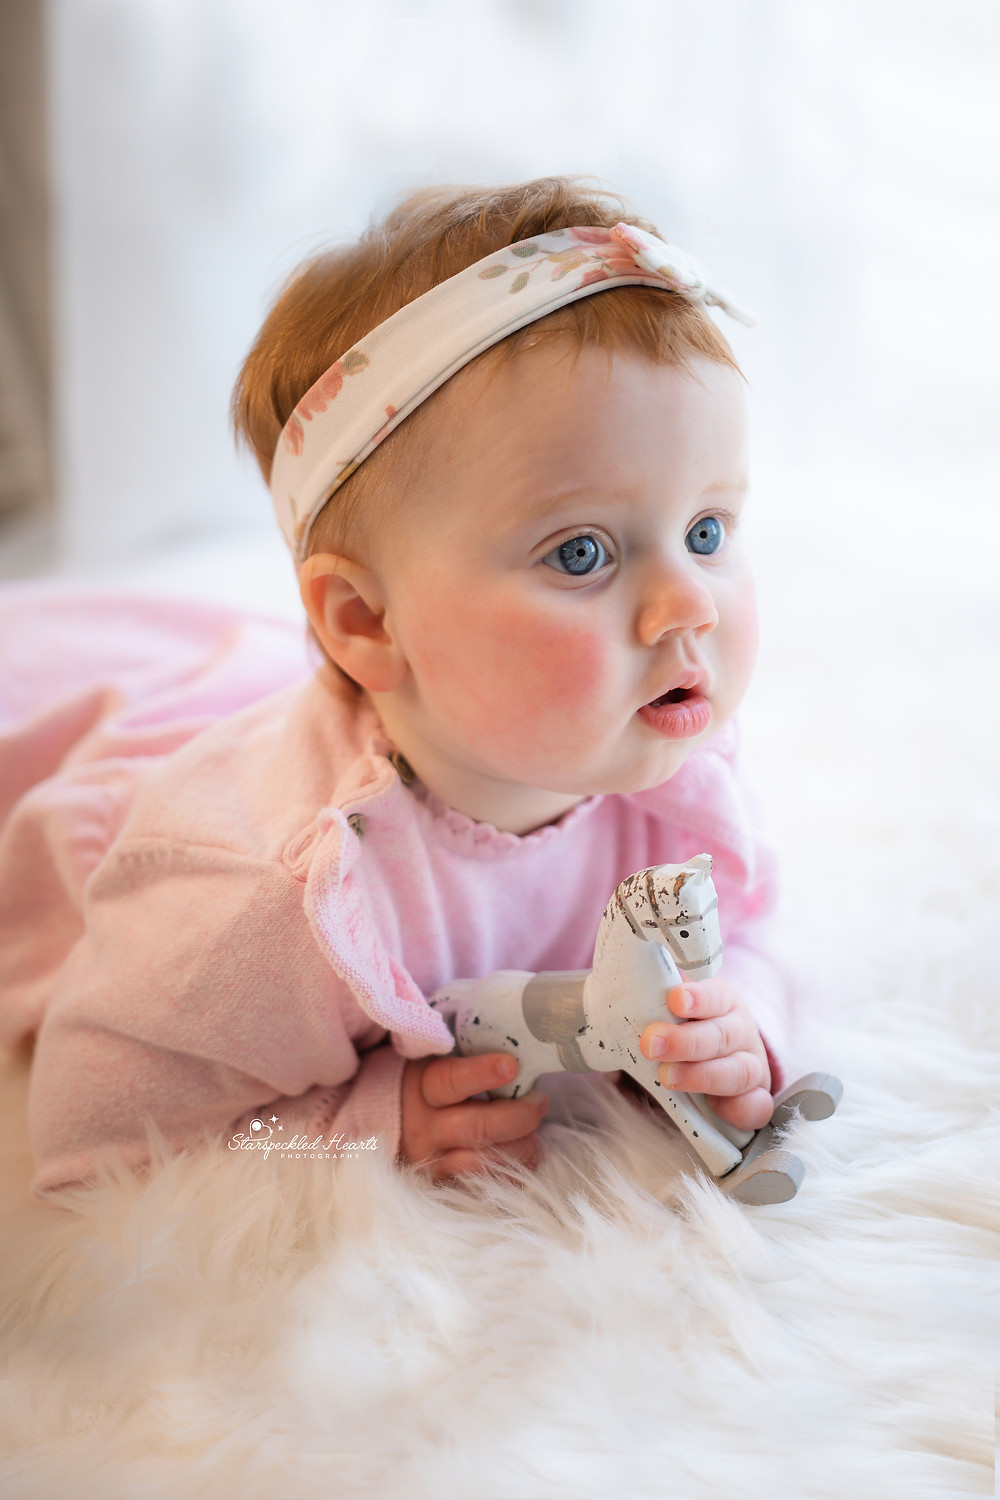 close up of baby girl with big blue eyes wearing a pink dress, cake smash photographer near me hampshire surrey